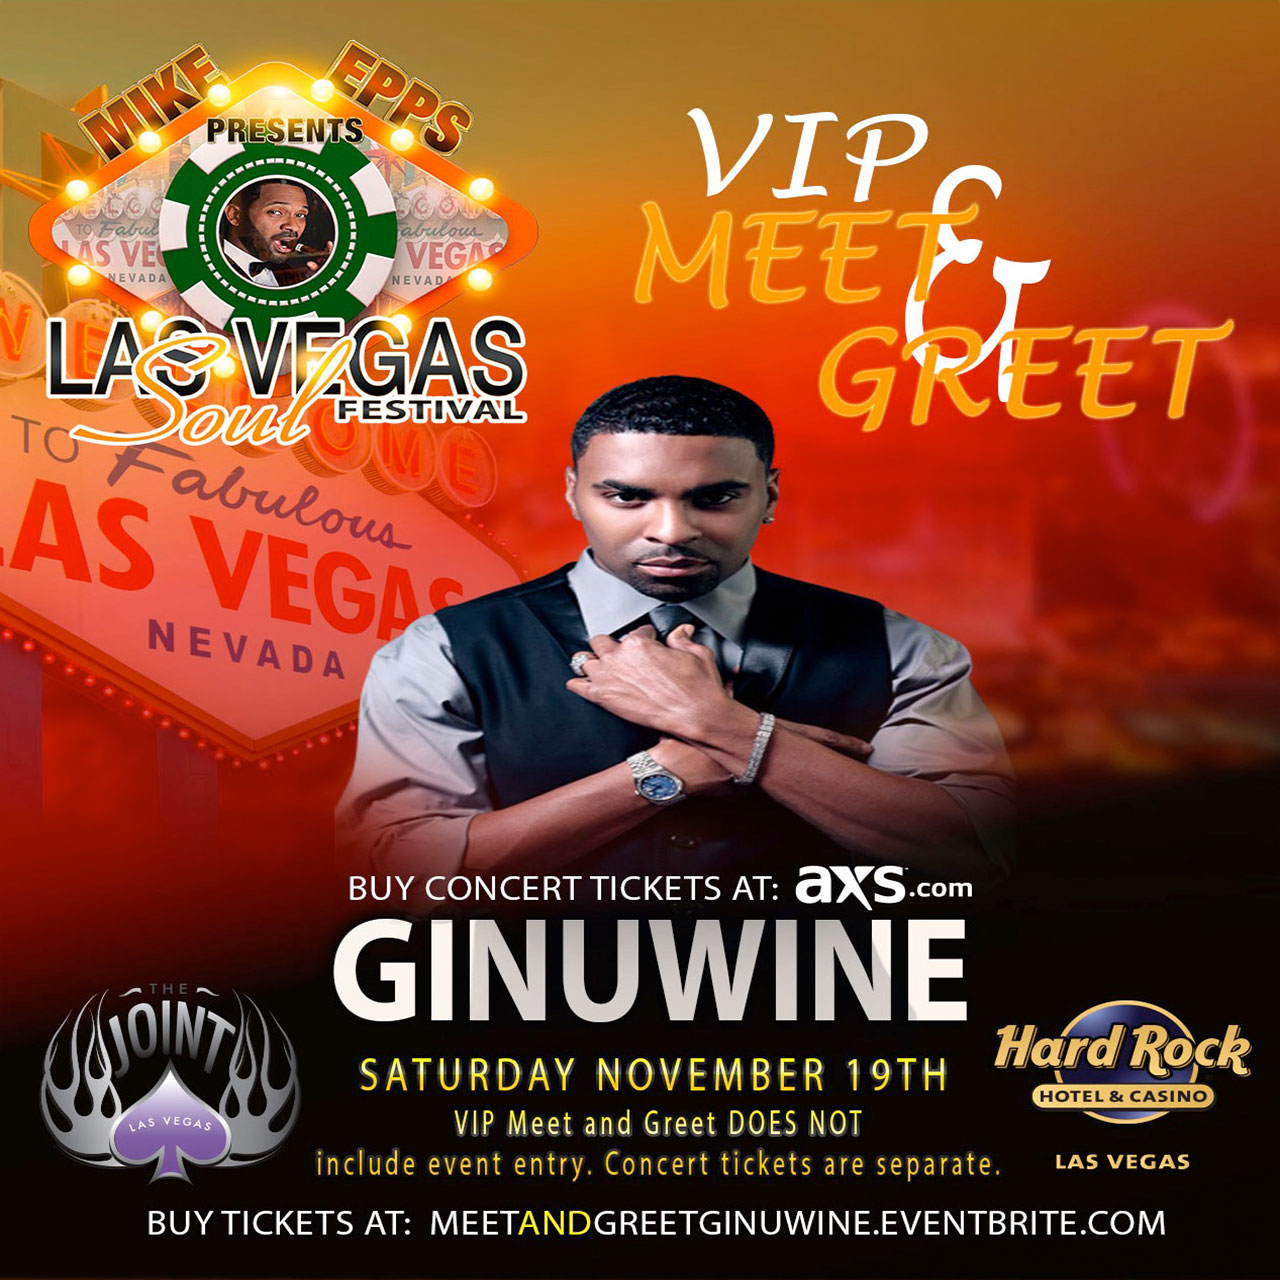 GINUWINE Meet and Greet